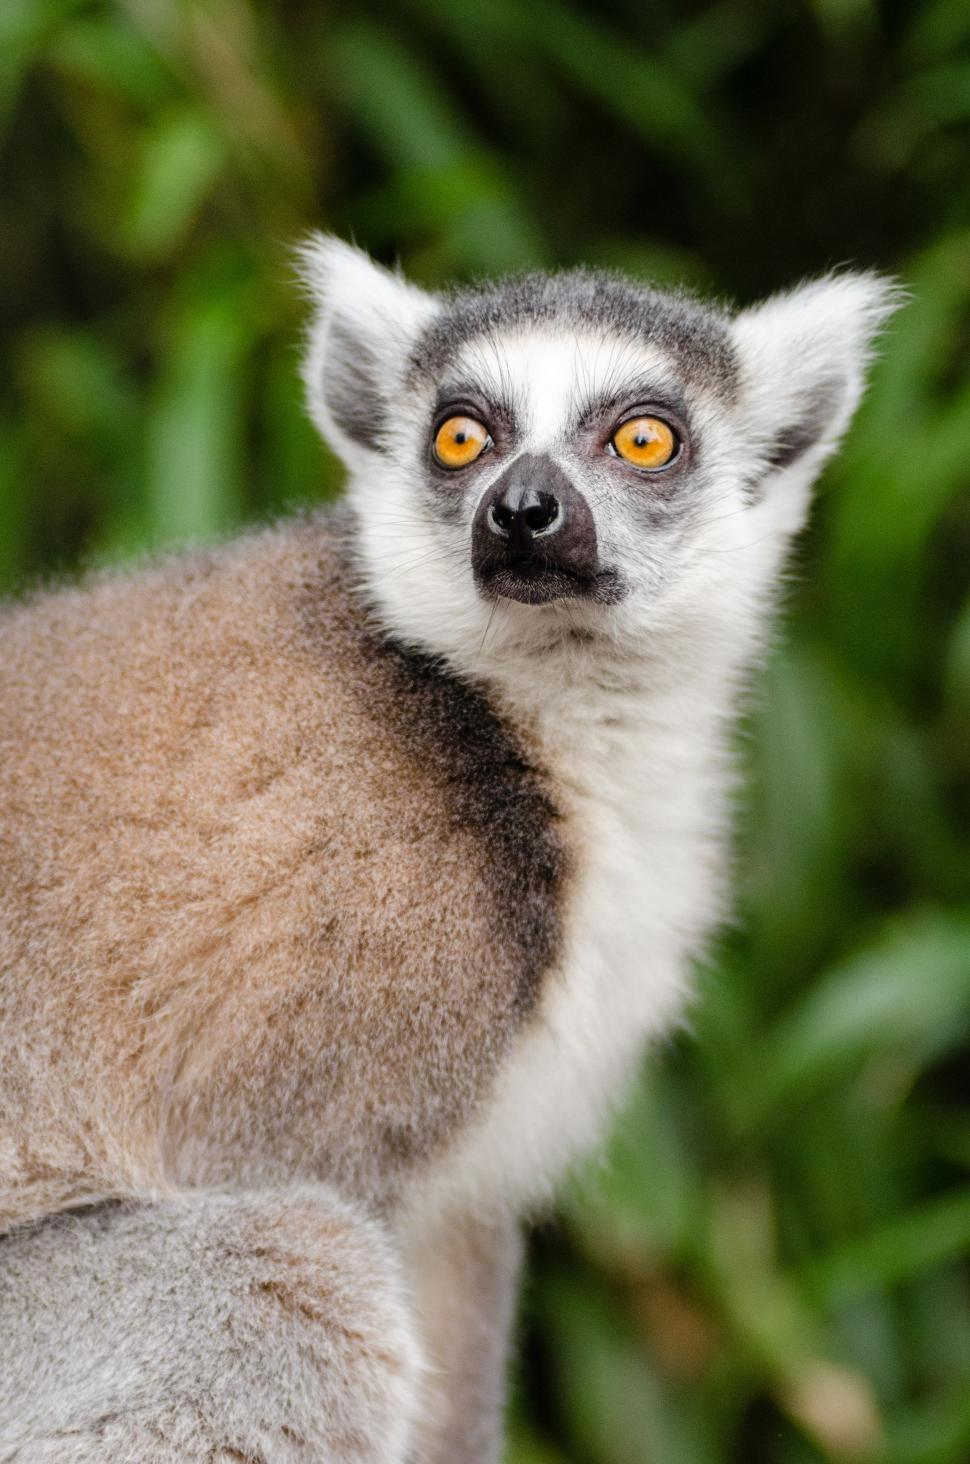 Download Free Stock Photo of Ring-tailed lemur with yellow eyes